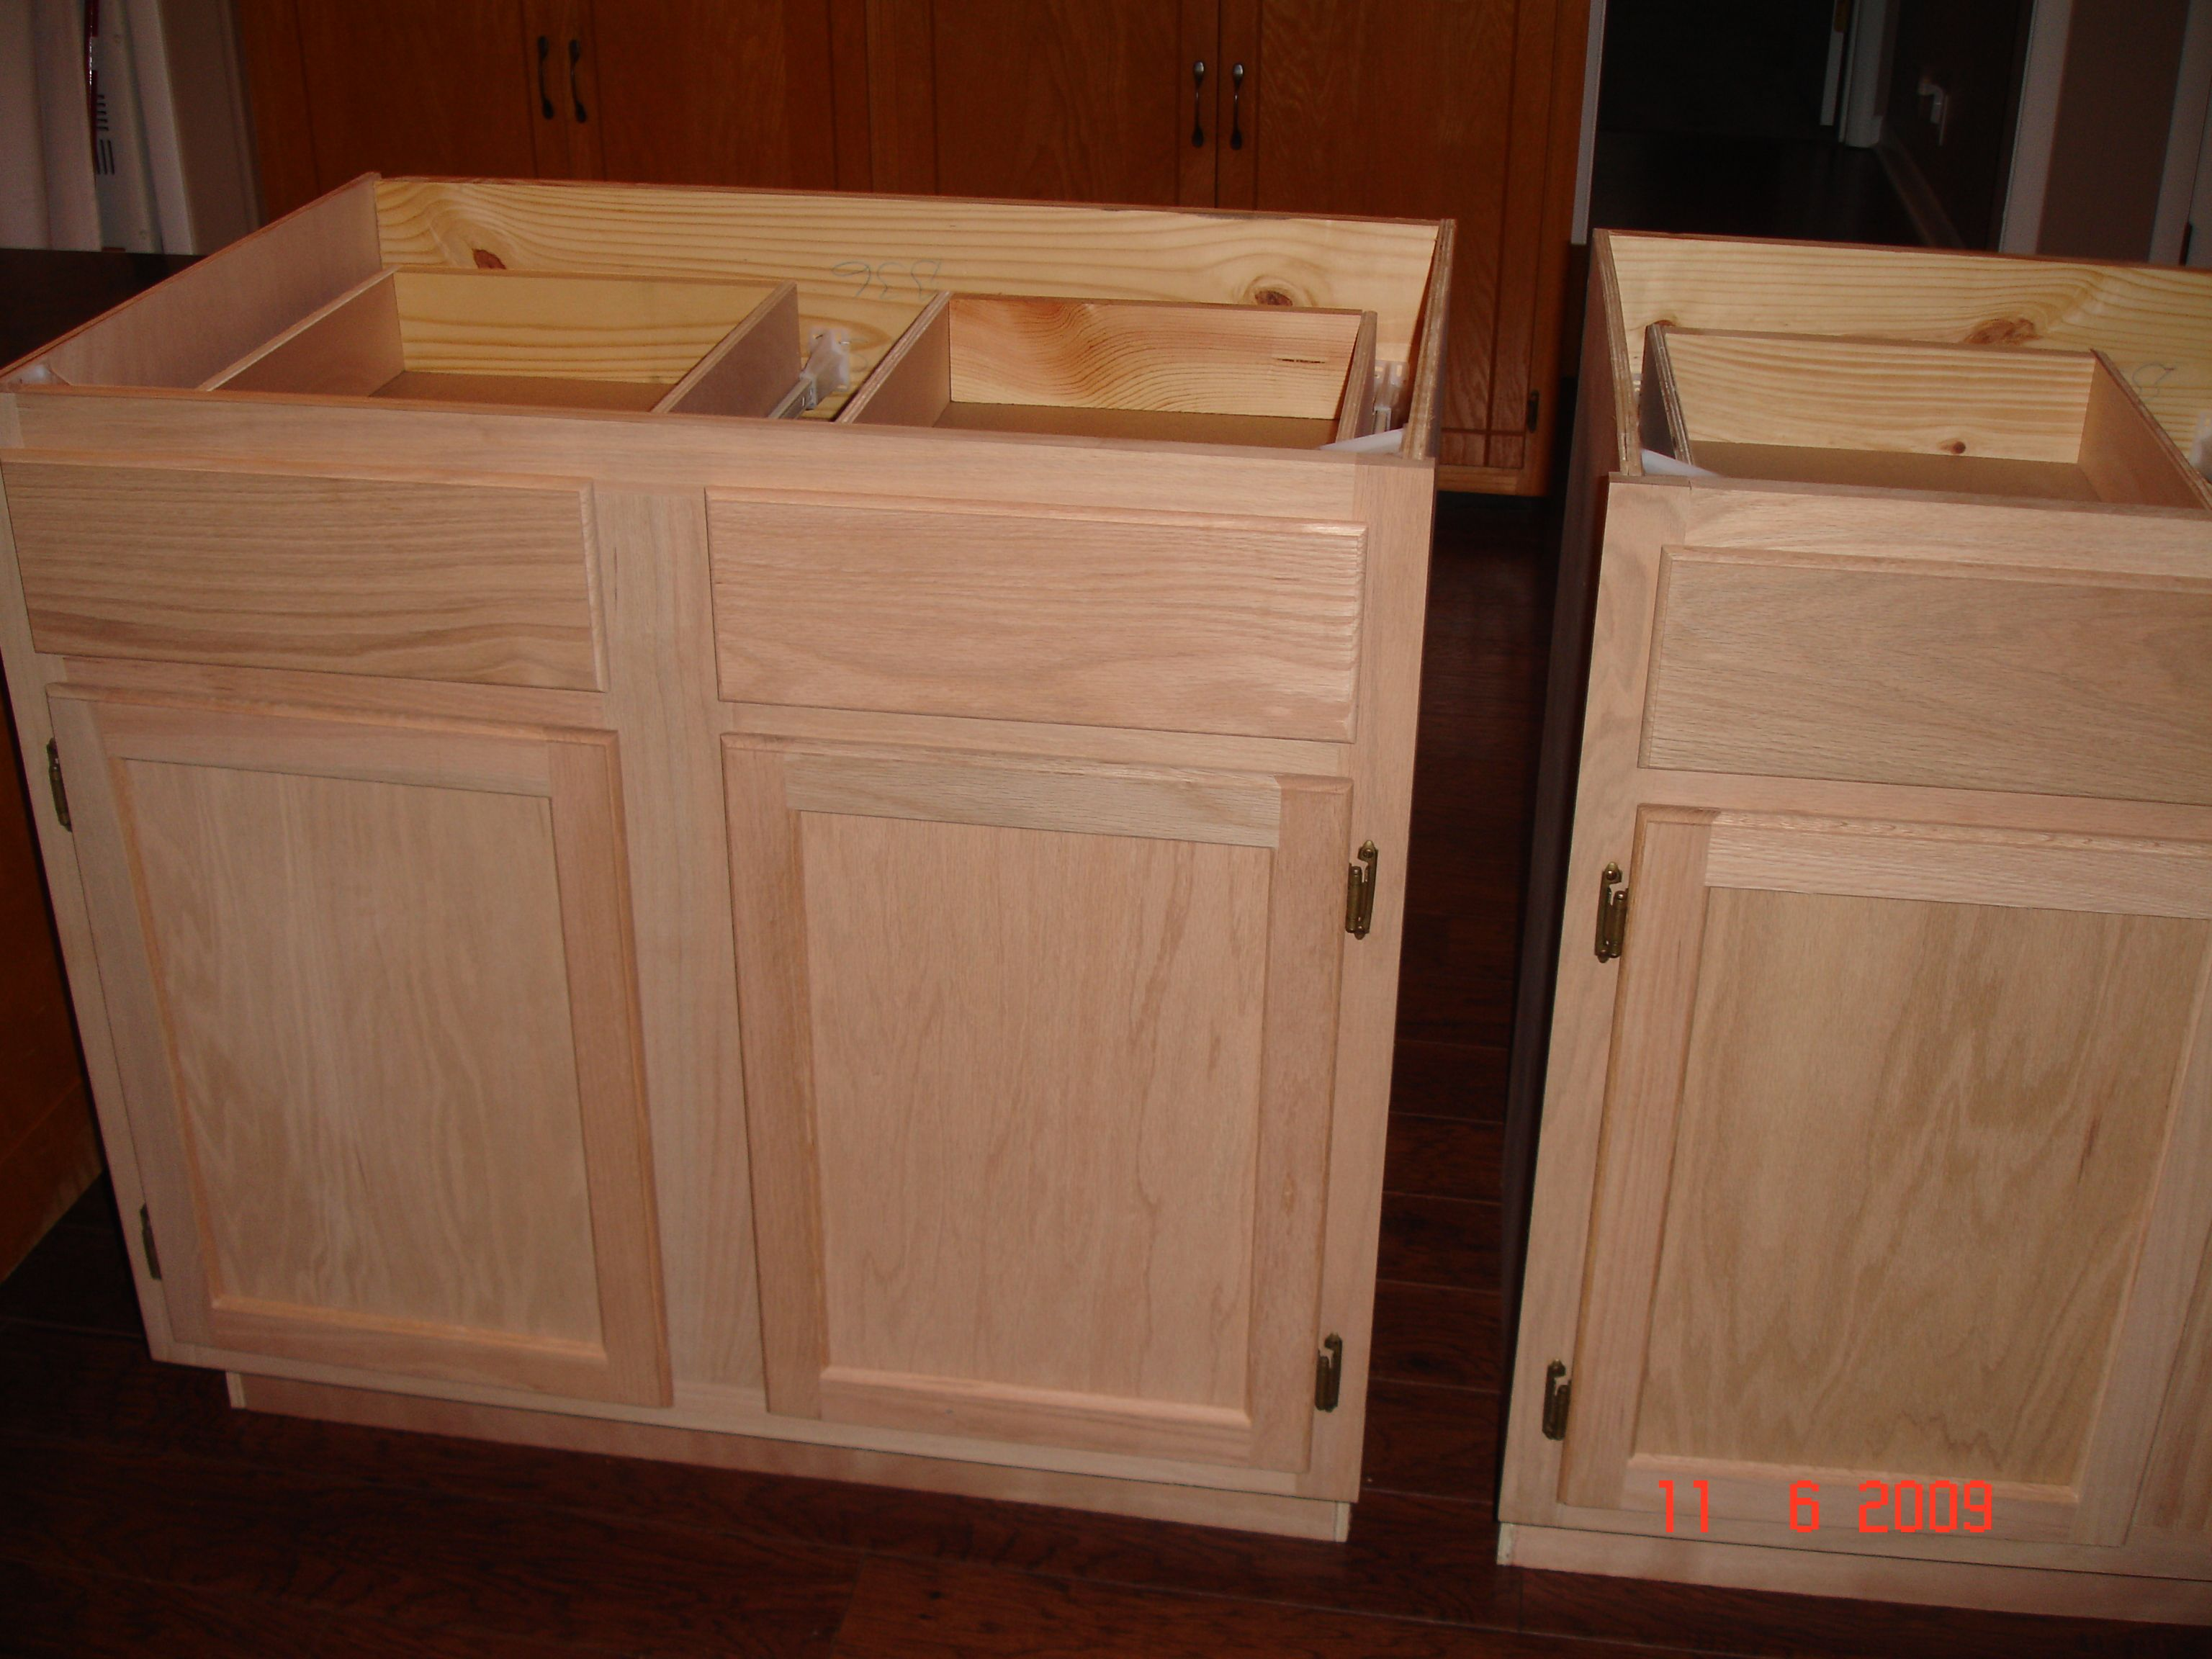 Unfinished Kitchen Cabinets. DIY kitchen island made by hubby  me from unfinished cabinets beadboard stain